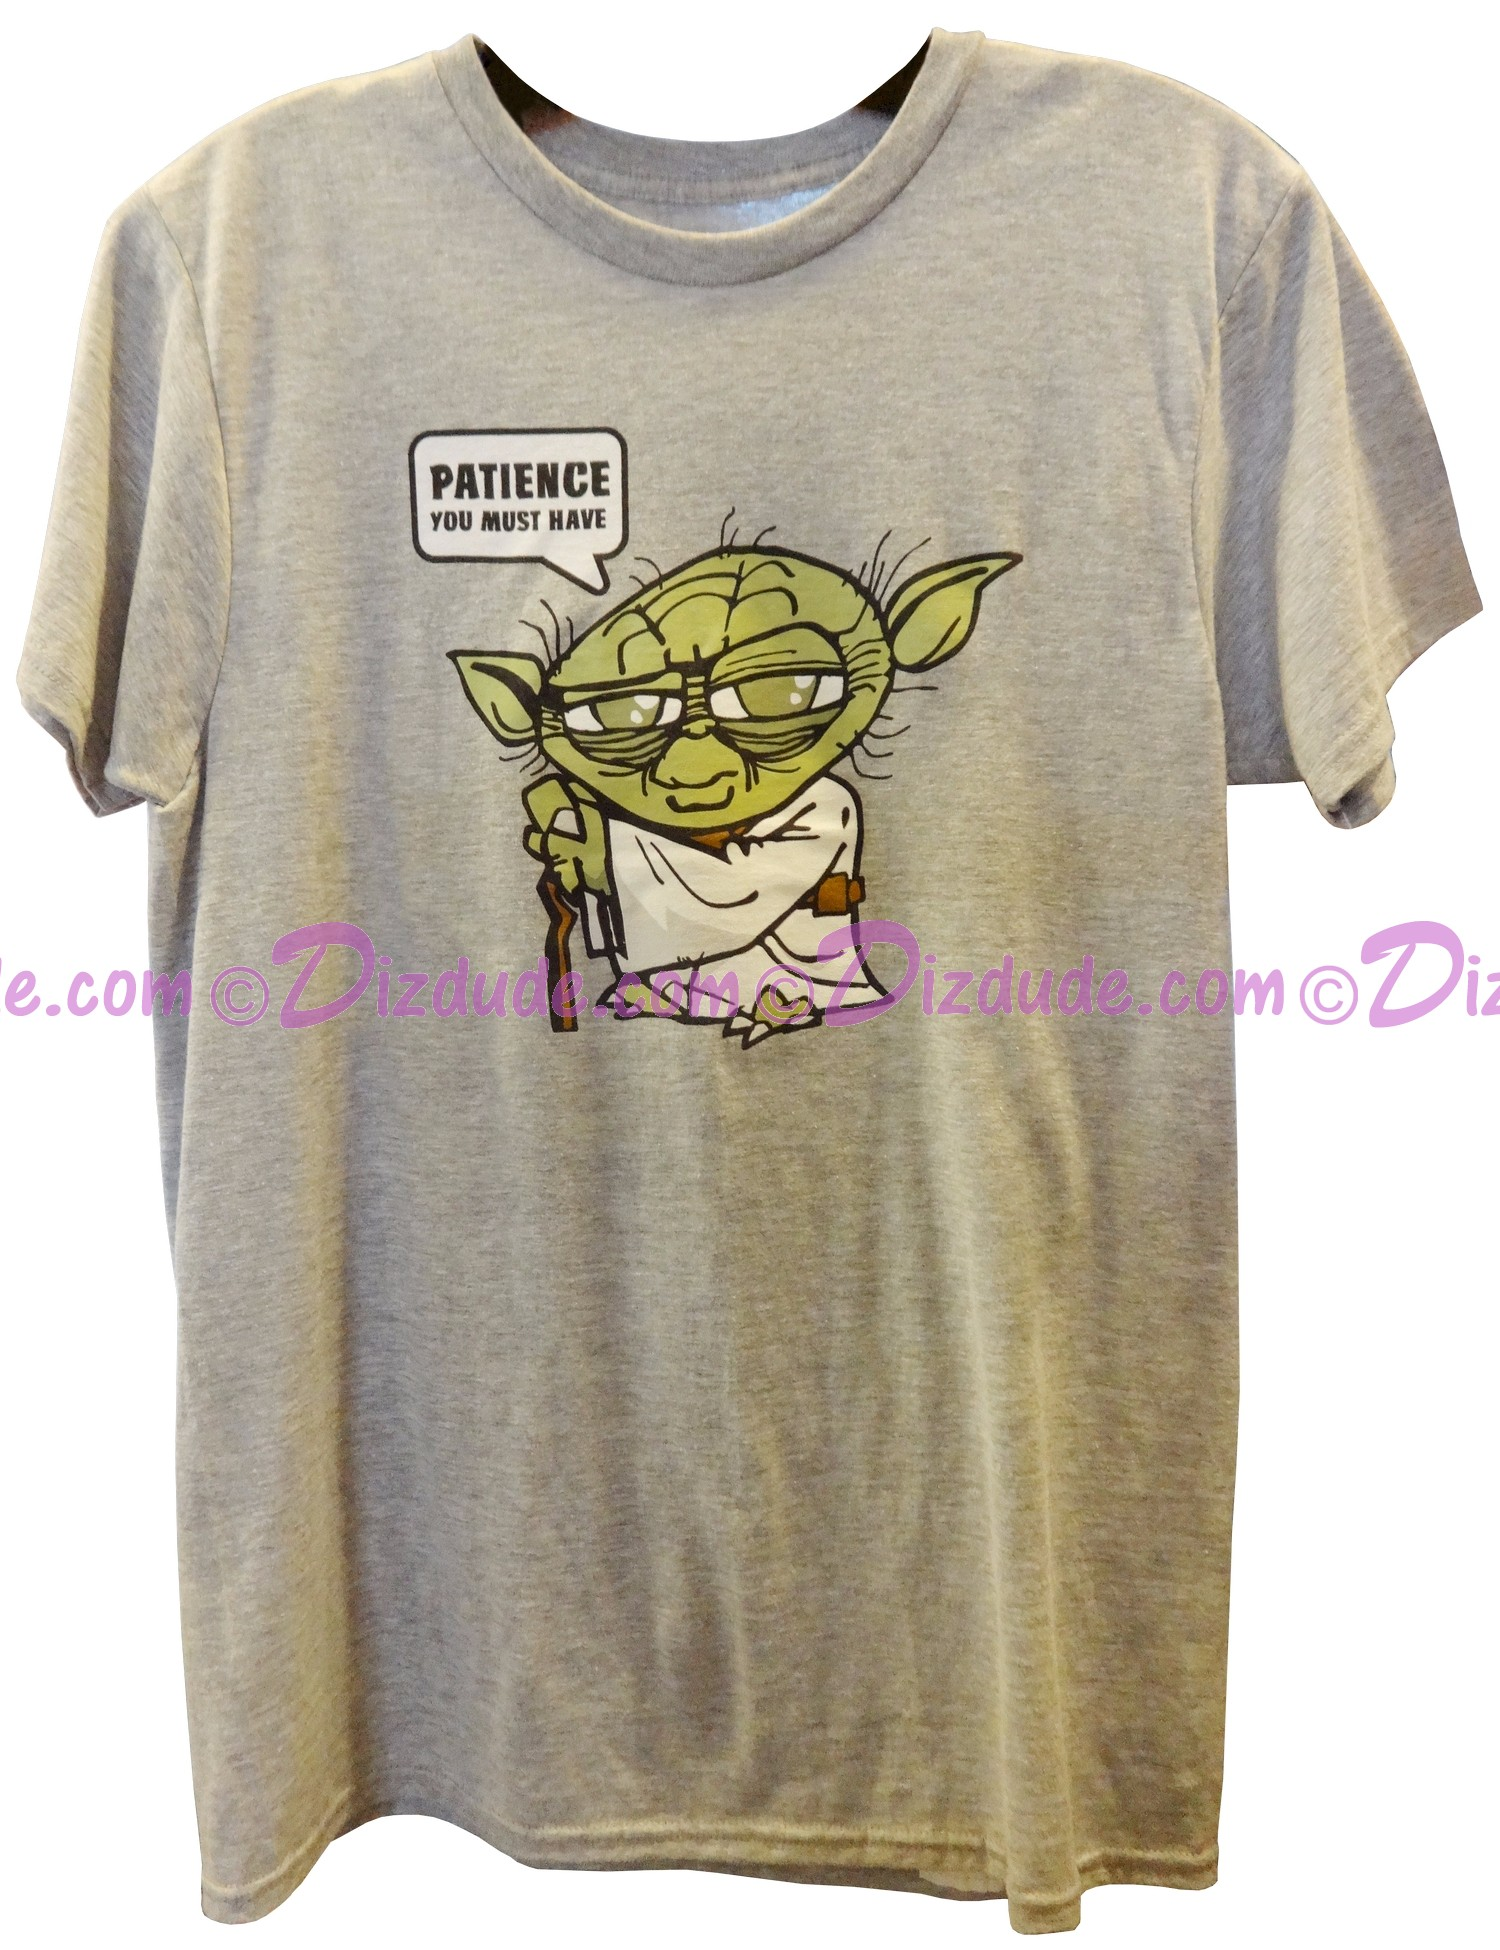 Yoda Patience You Must Have Adult T-Shirt (Tshirt, T shirt or Tee) - Disney Star Wars © Dizdude.com